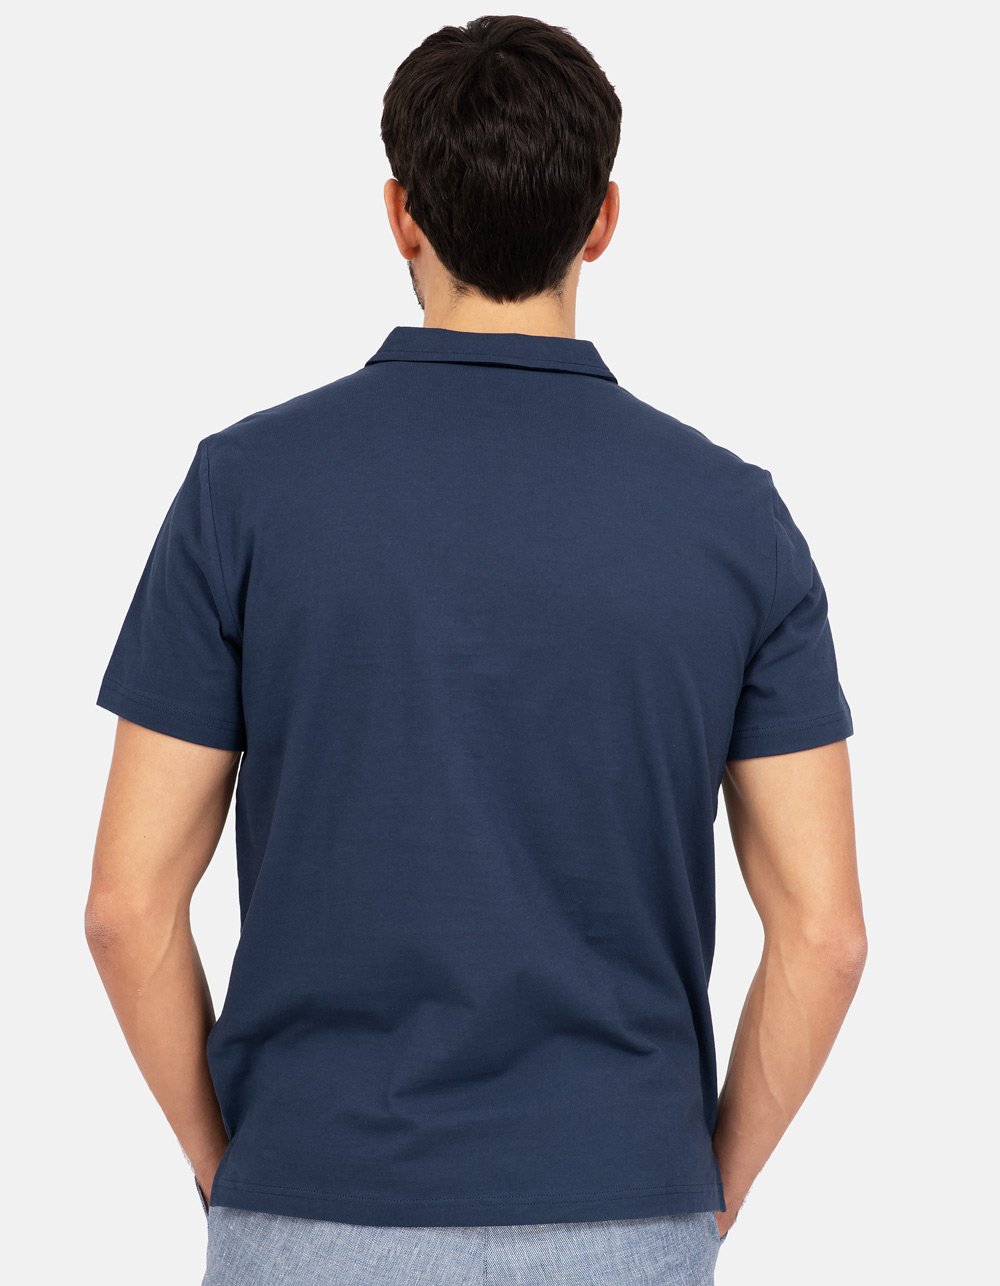 Navy blue pocket polo shirt - Backside